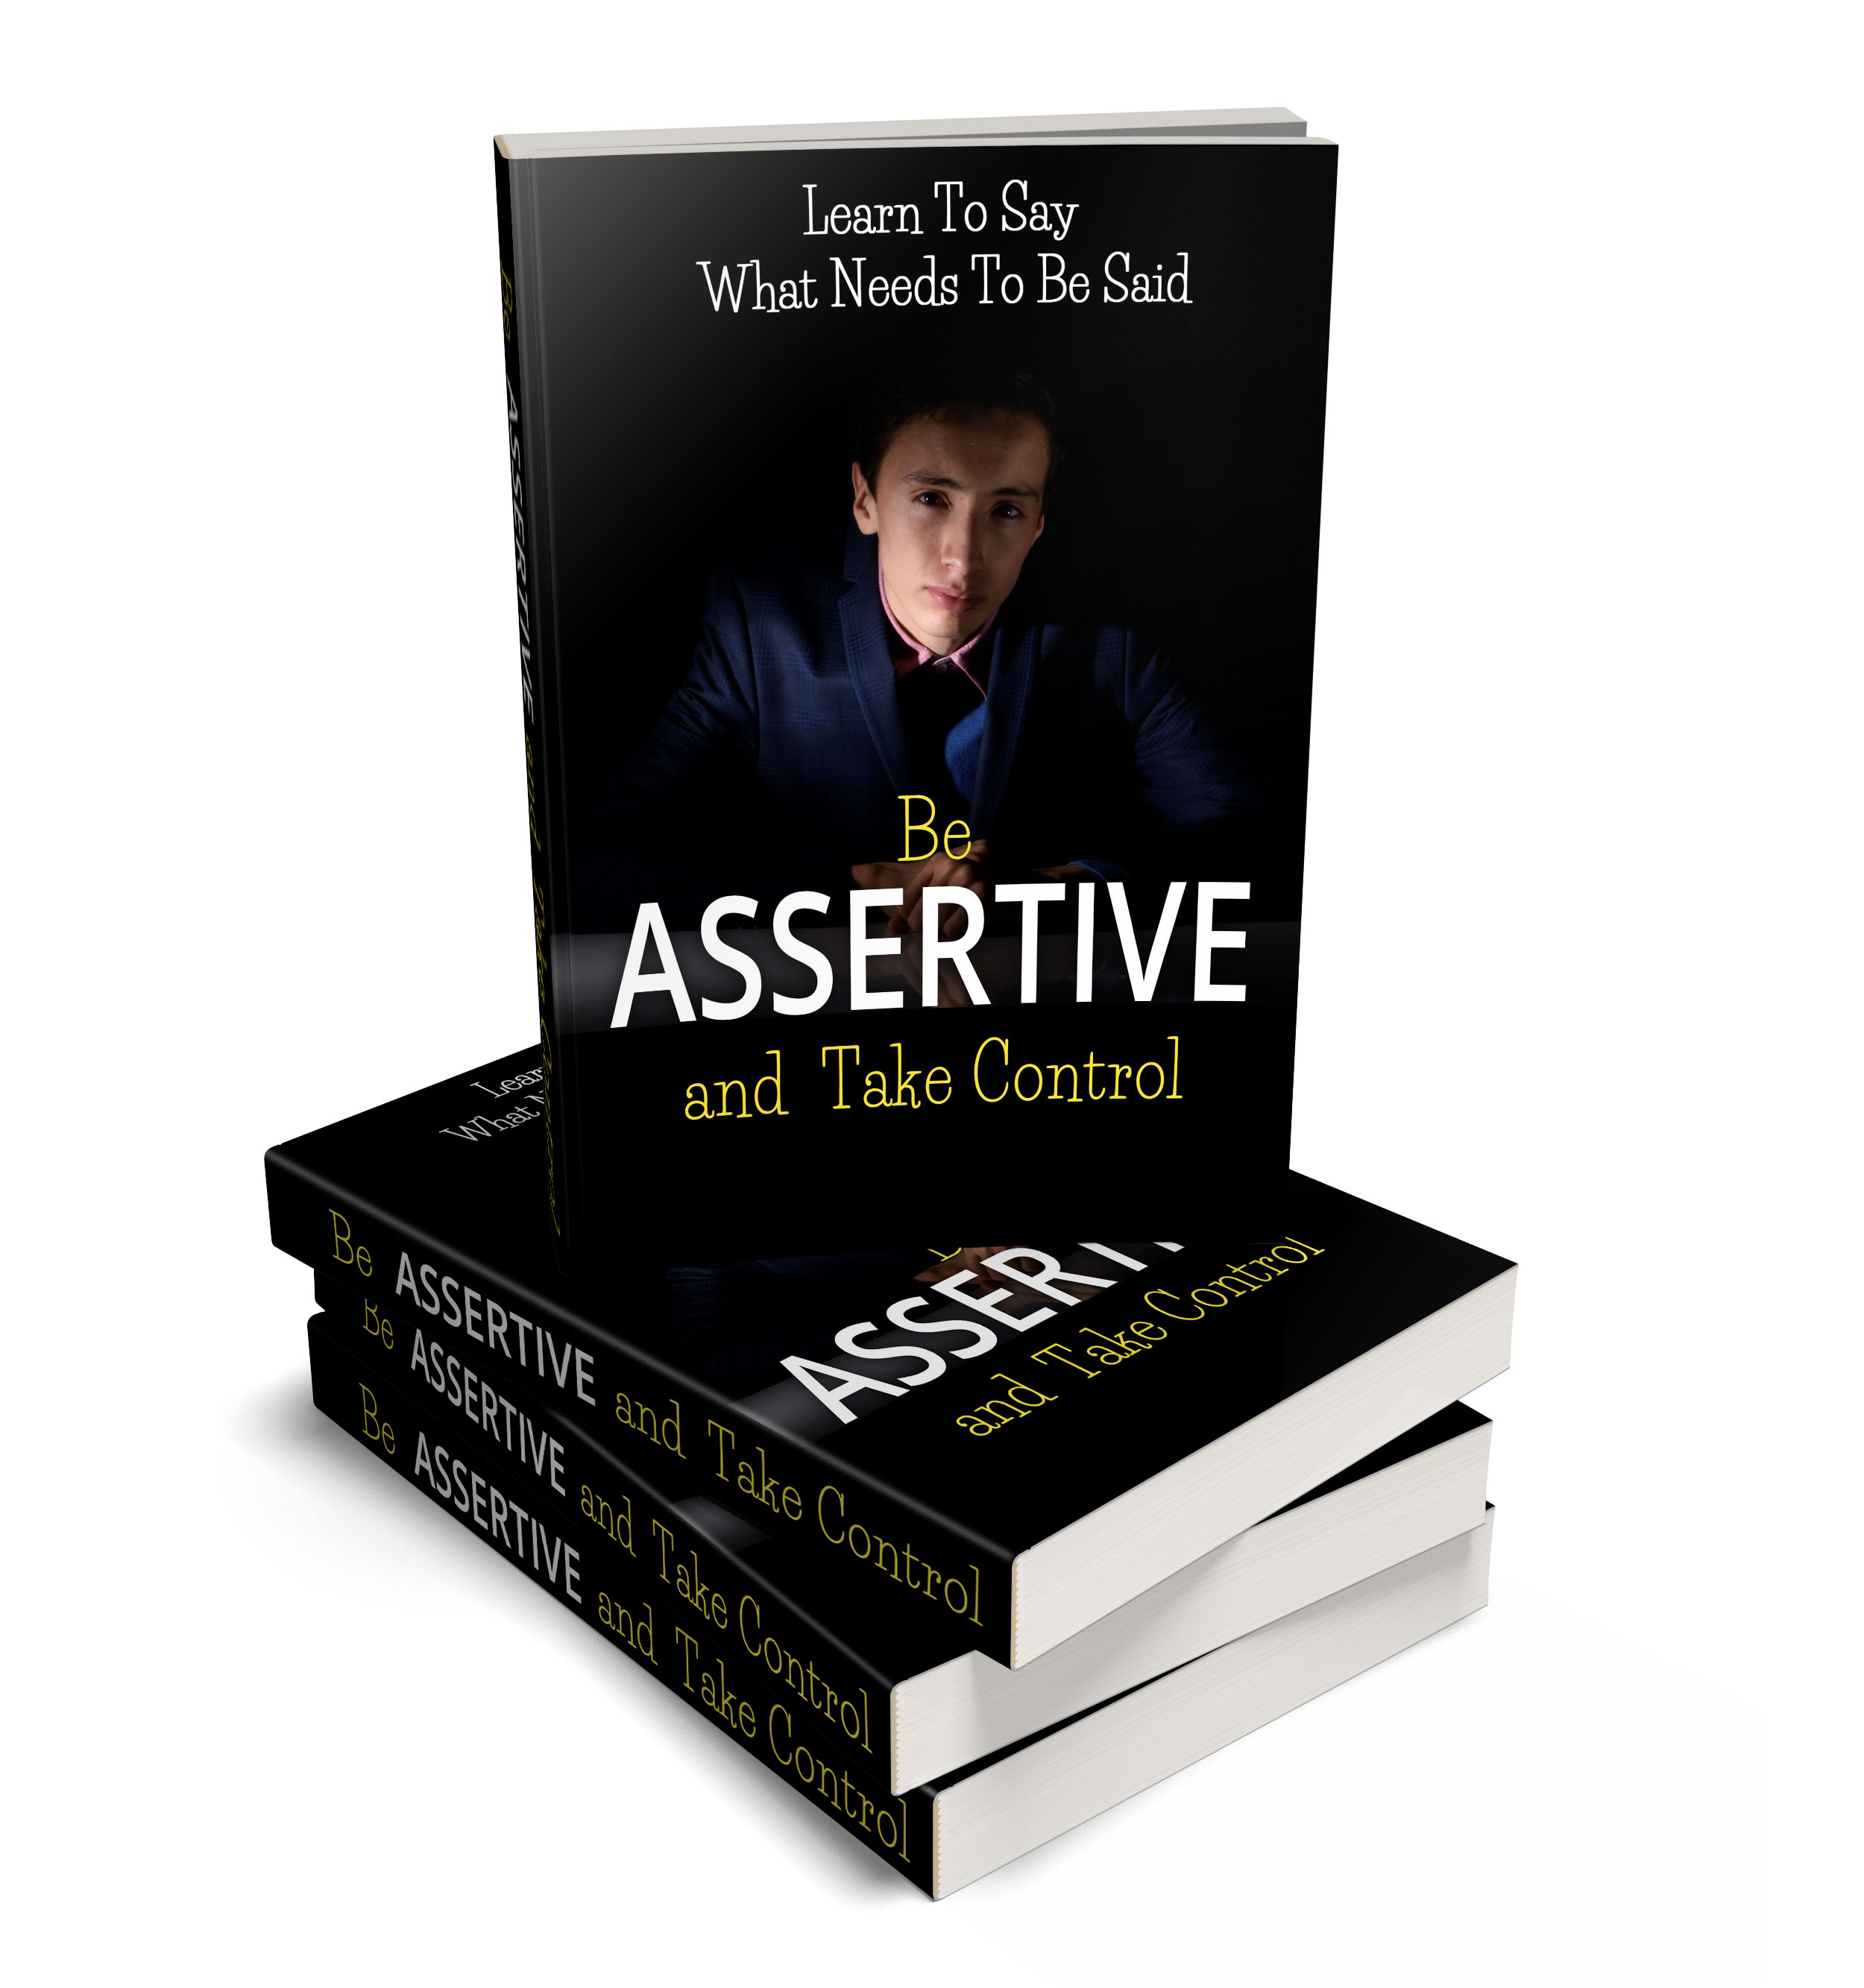 Be Assertive And Take Control